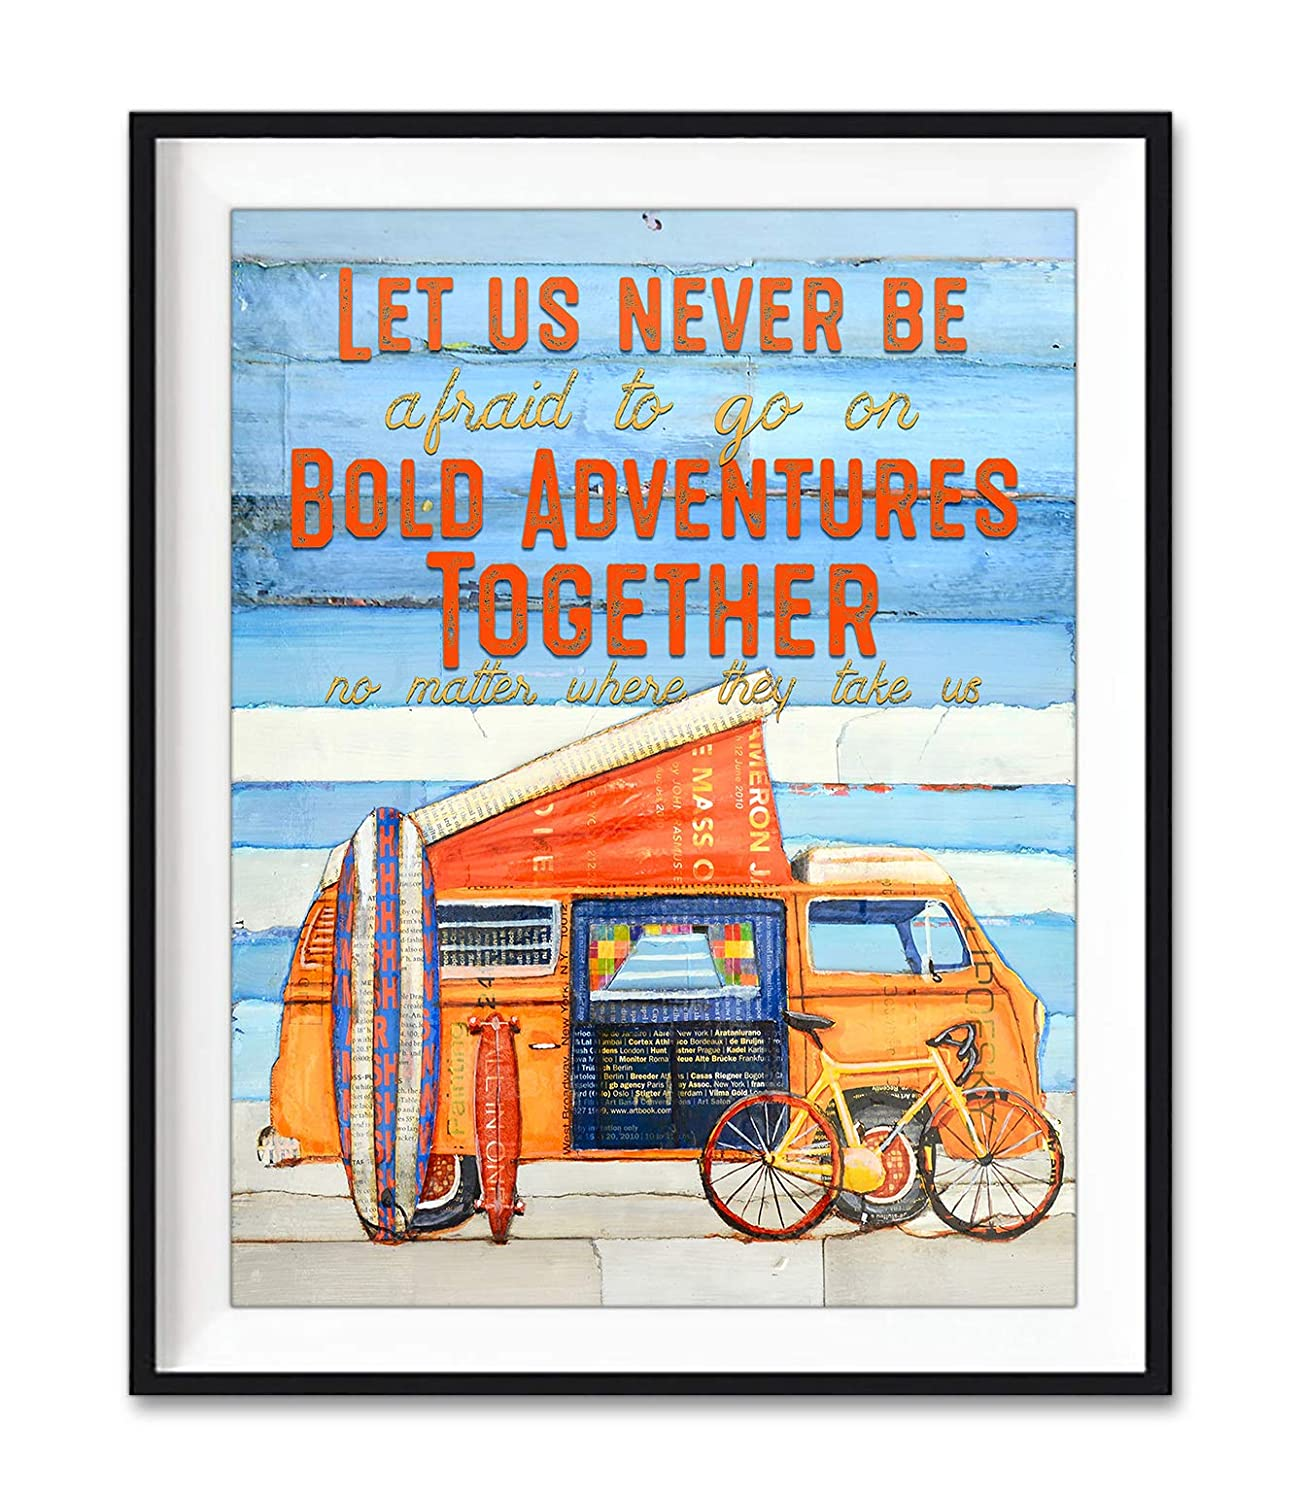 Bold Adventures Together - Danny Phillips Art Print, Unframed, Classic Automobile, Camping Cycling Skateboard Surfboard Wall and Home Decor, Biking, Mixed Media Collage Fine Art, All Sizes